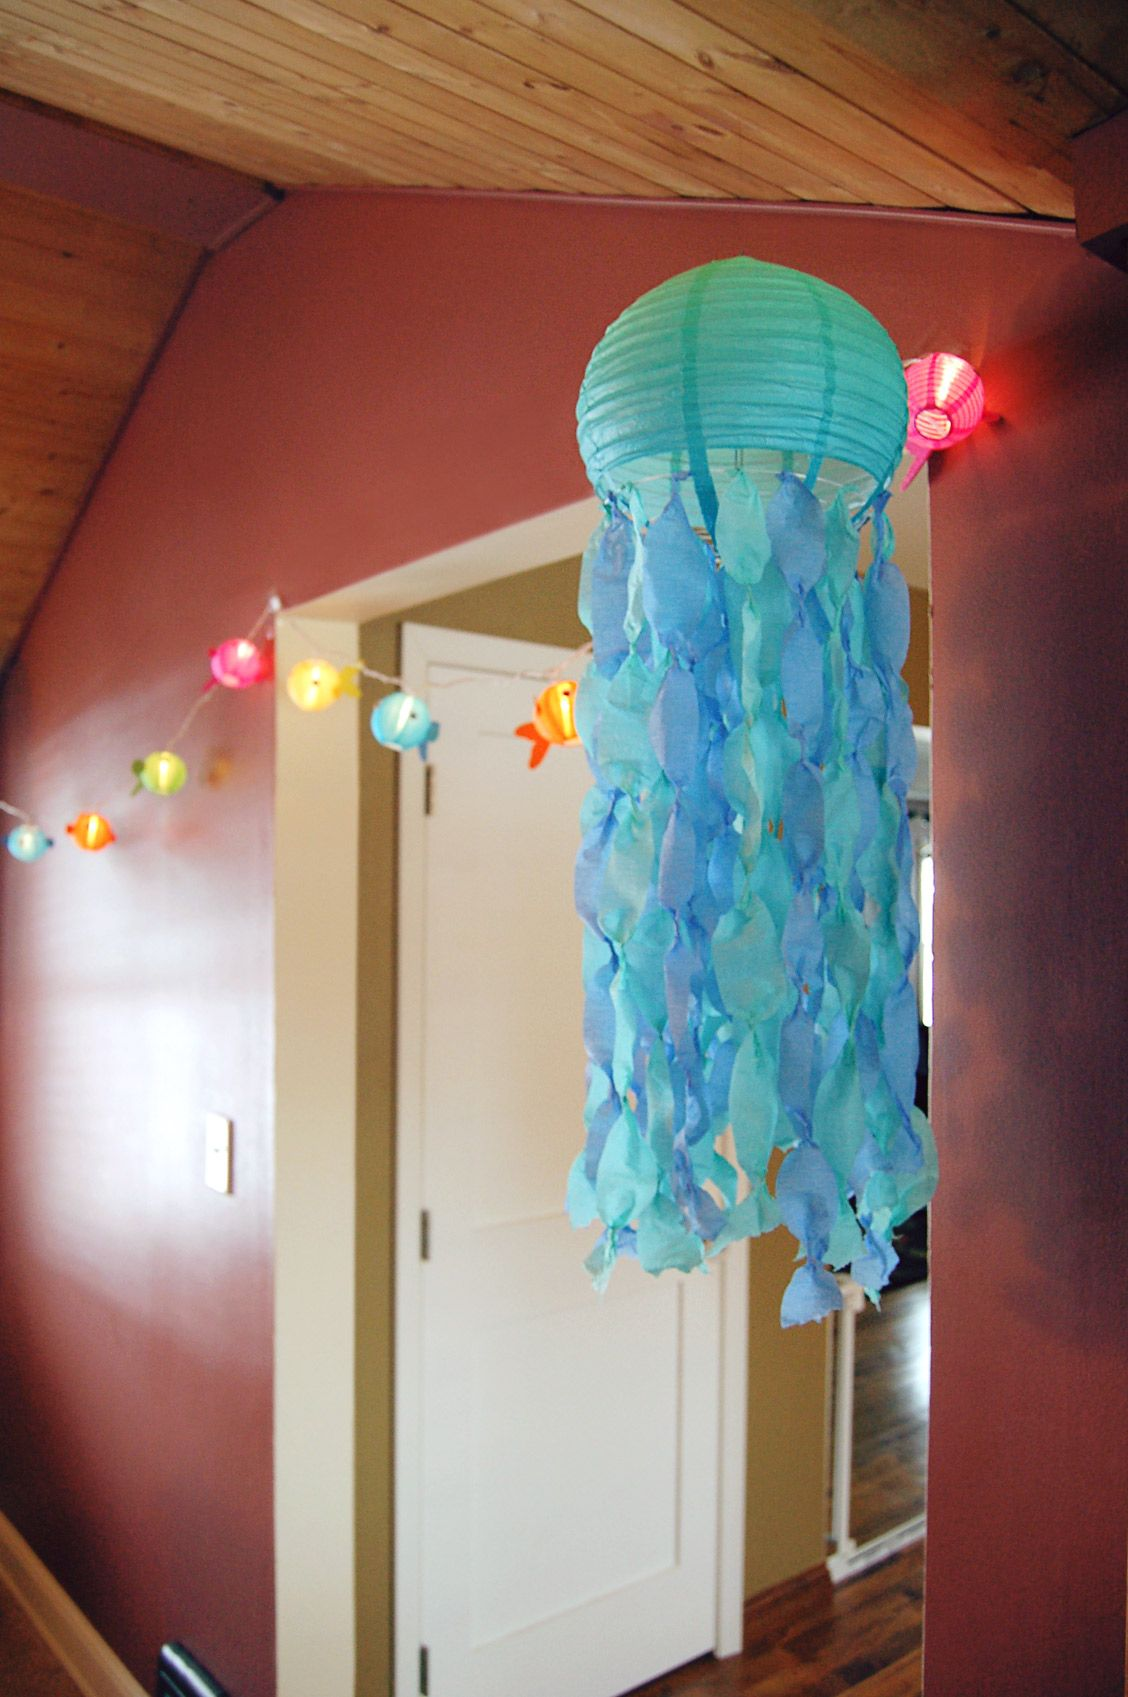 Jellyfish lanterns BirthdayExpress MermaidParty Jellyfish lanterns BirthdayExpress